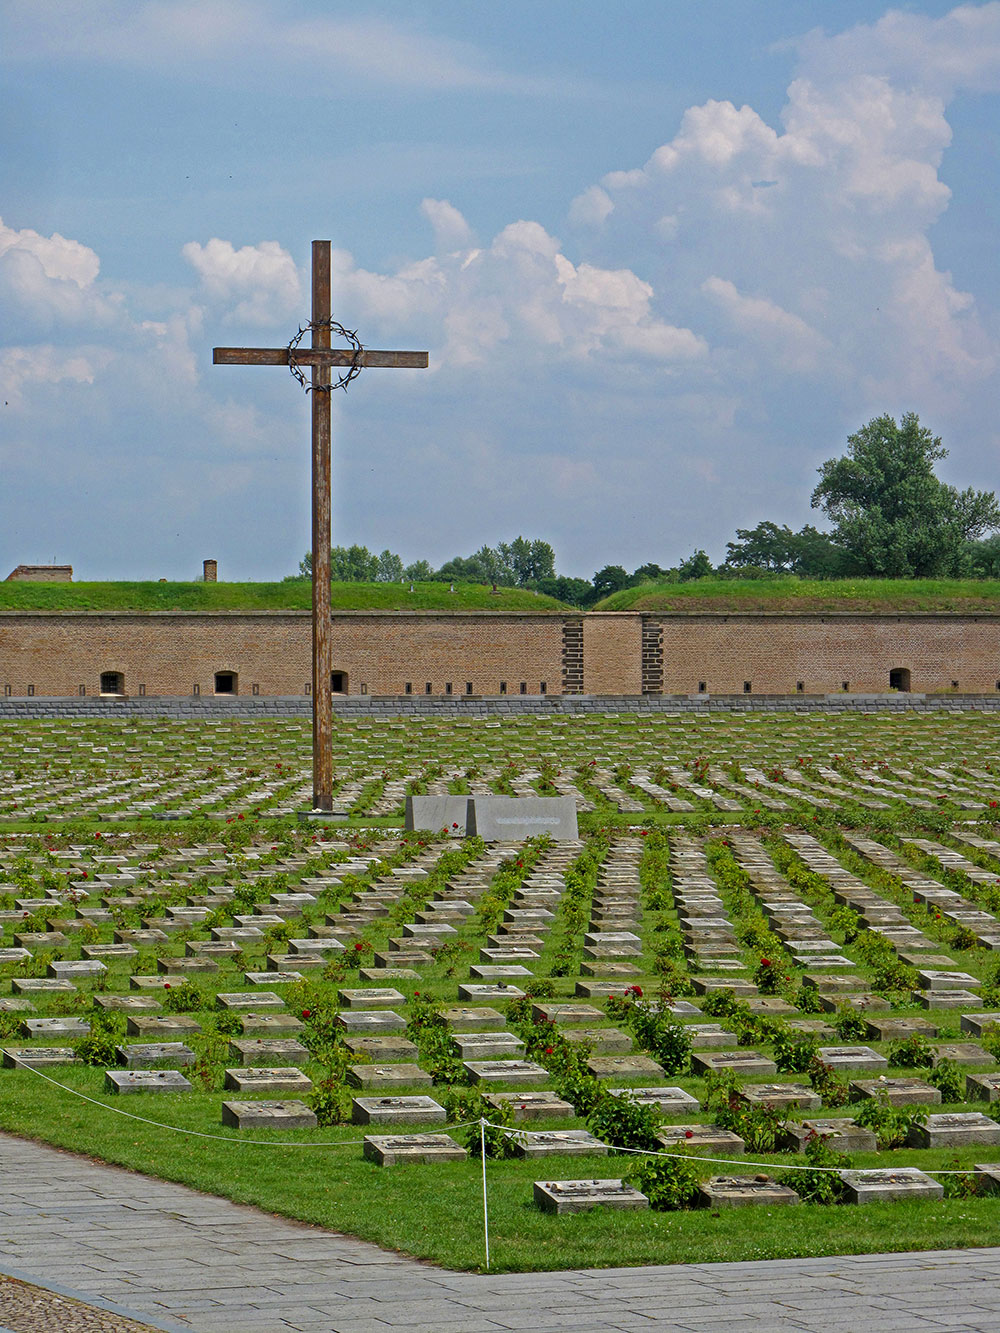 Out of the total number of graves (2,386), only half are marked with names since in many cases the remains found in mass graves after the war could not be identified. Some graves are named only symbolically.